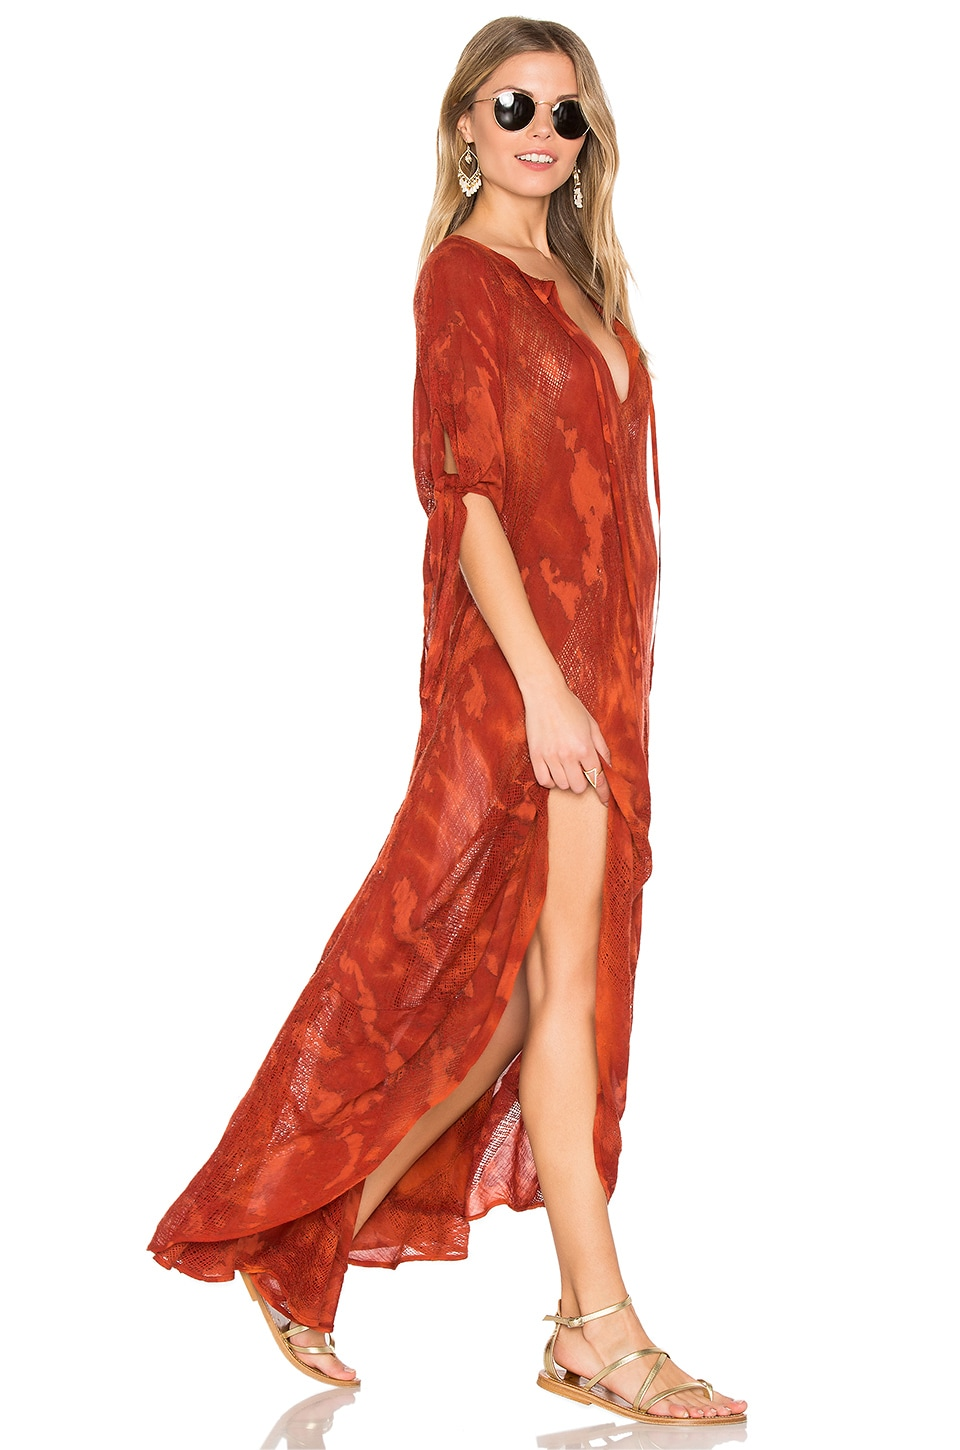 St. Barts Caftan by Blue Life